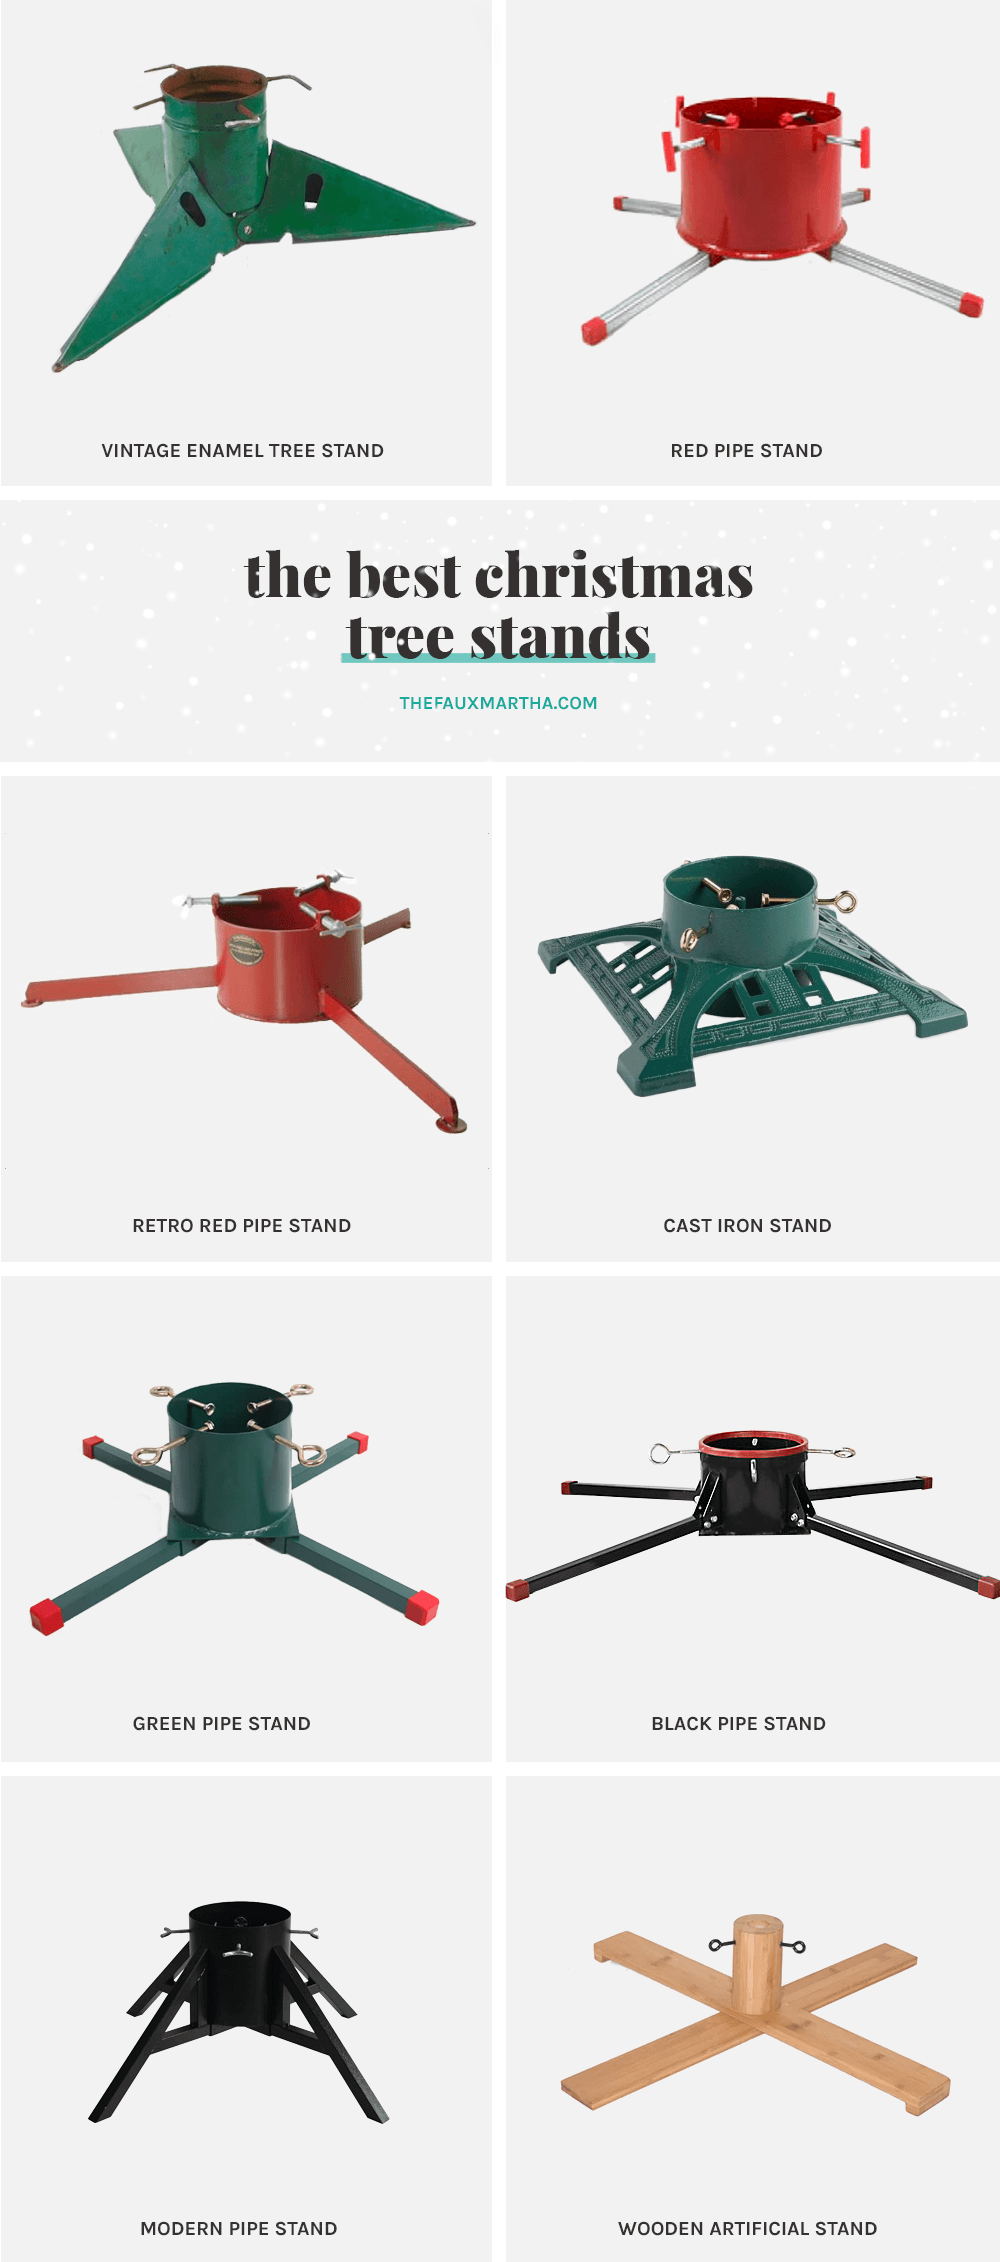 Best Christmas Tree Stands from The Faux Martha